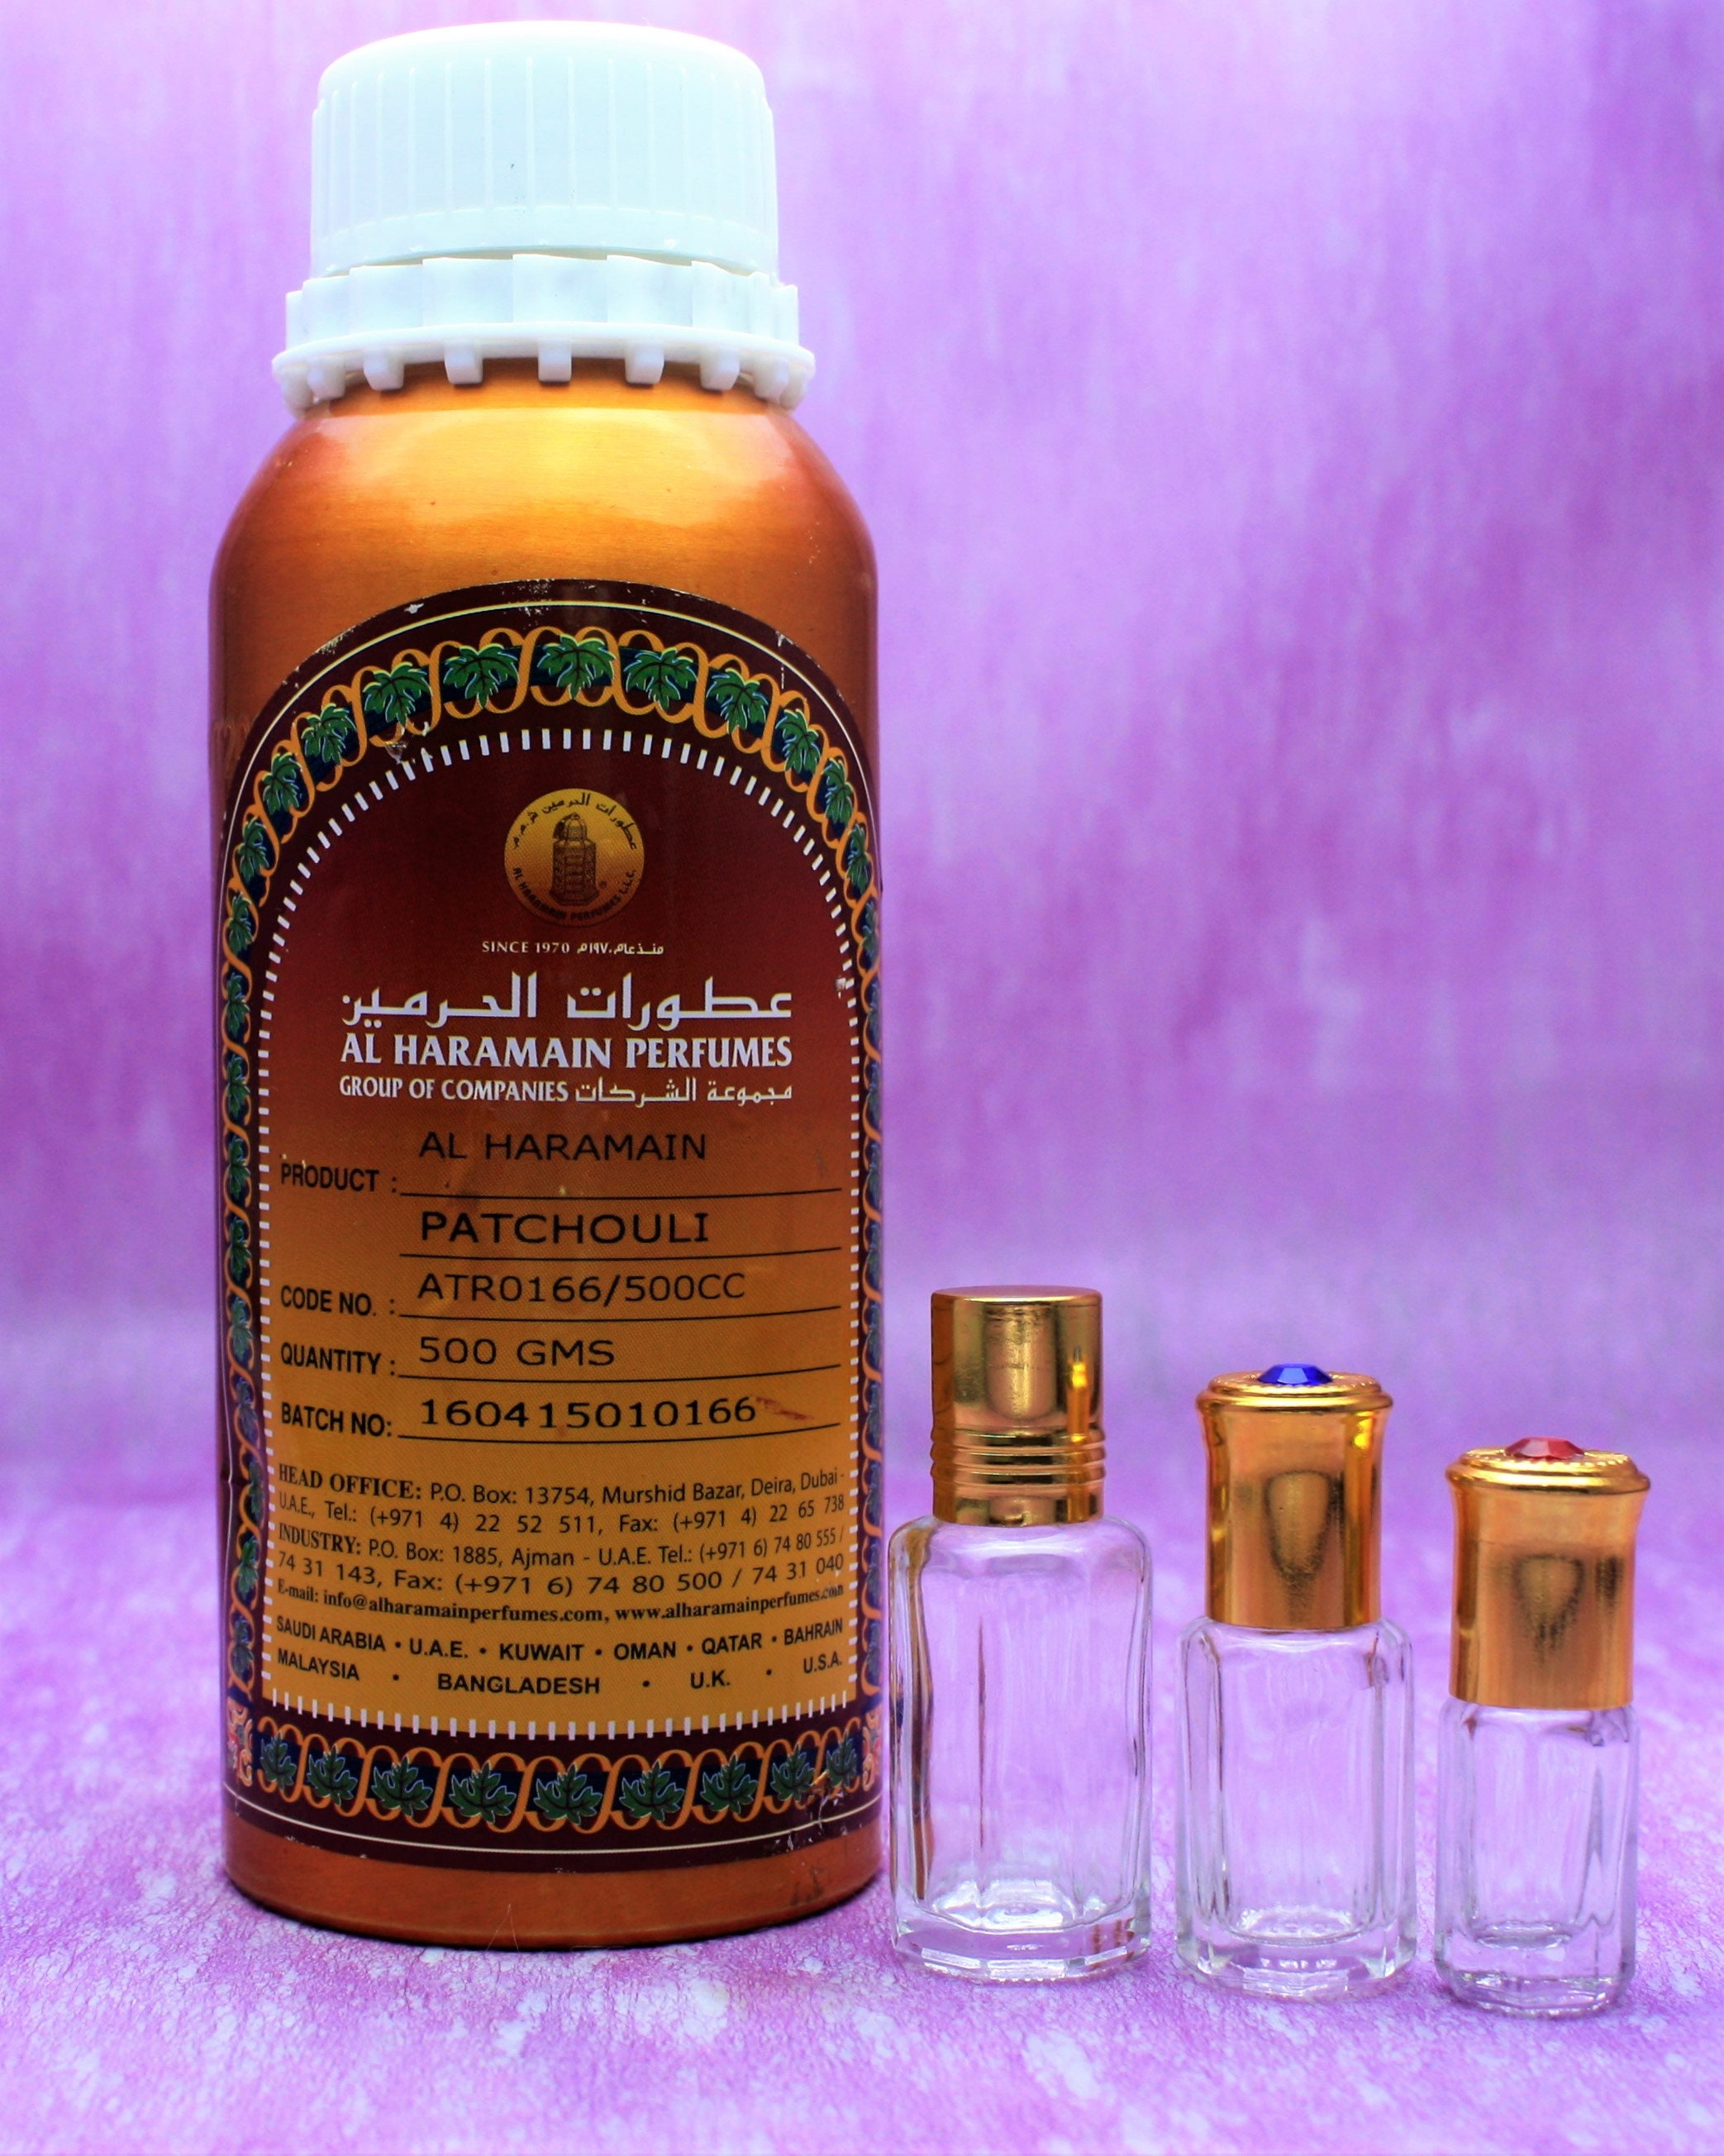 PATCHOULI, pure patchouli attar, pure Oriental perfumed oil